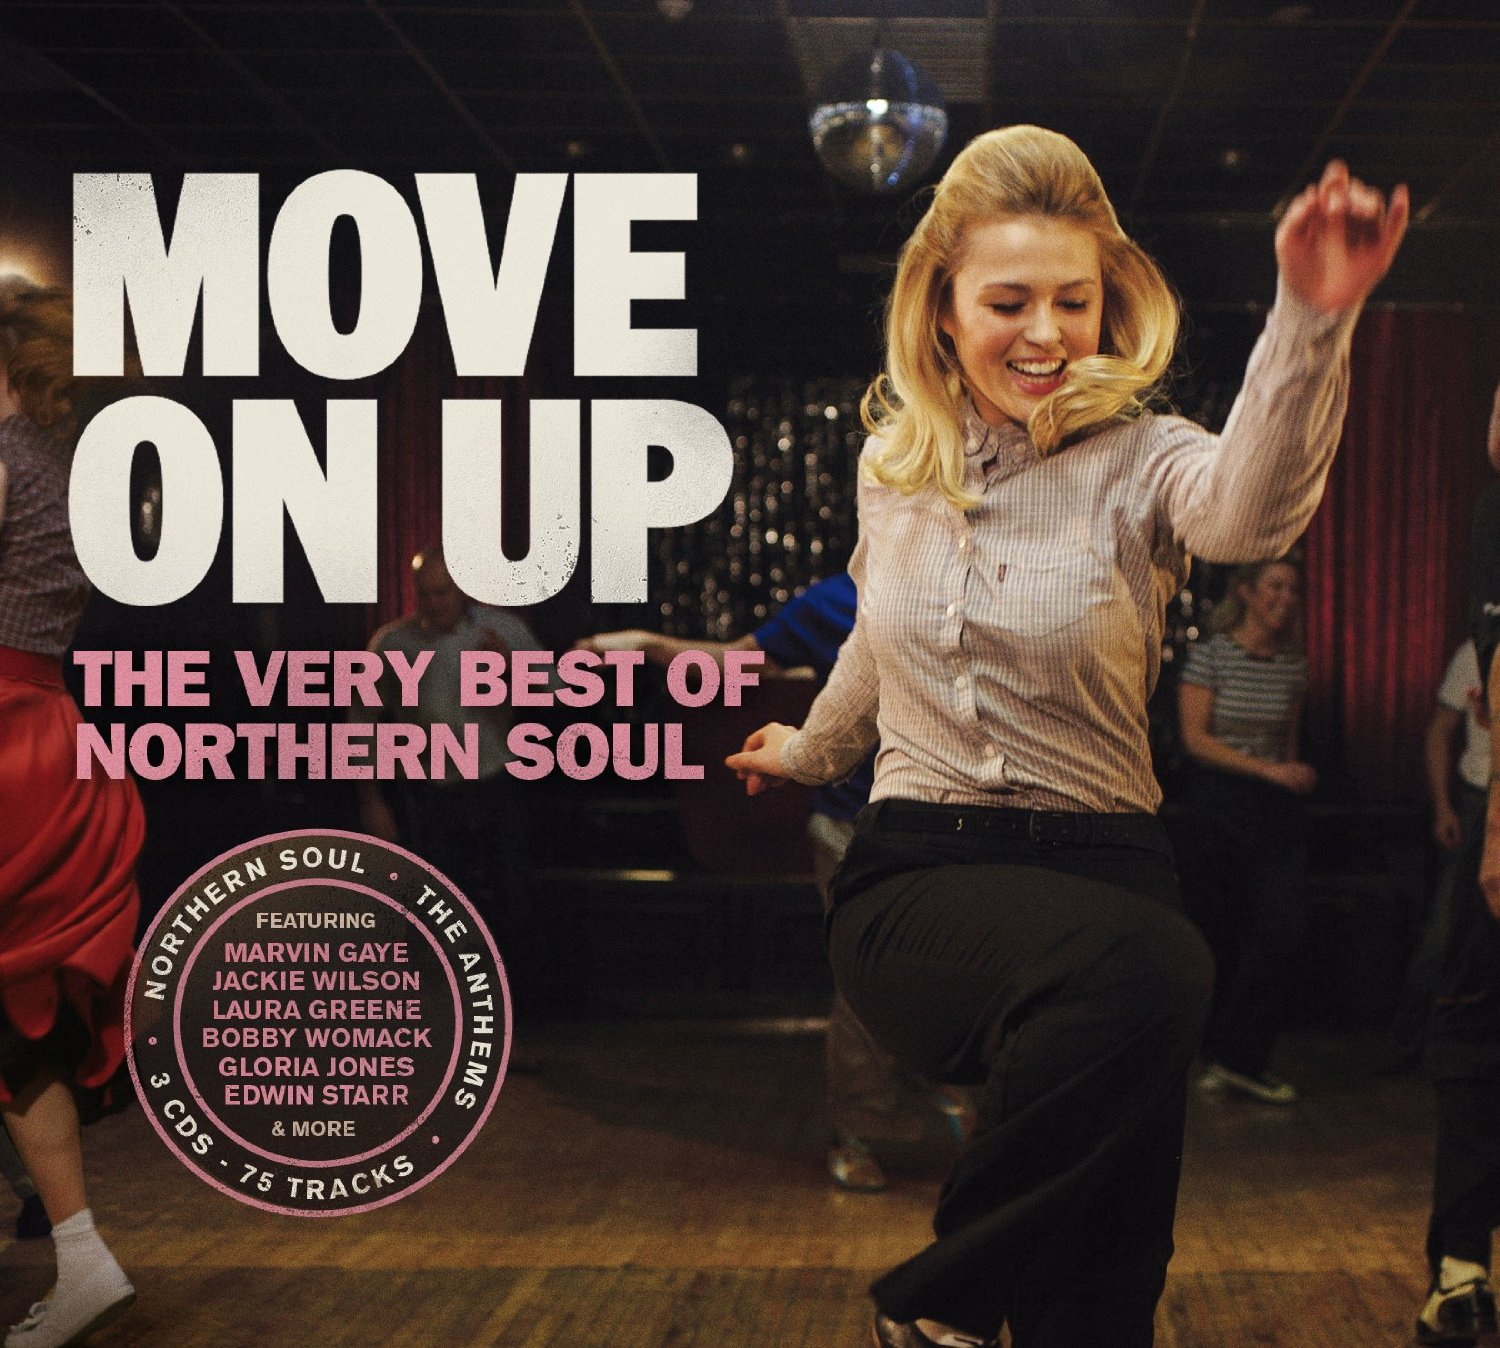 VA – Move On Up The Very Best Of Northern Soul (2015) [FLAC]